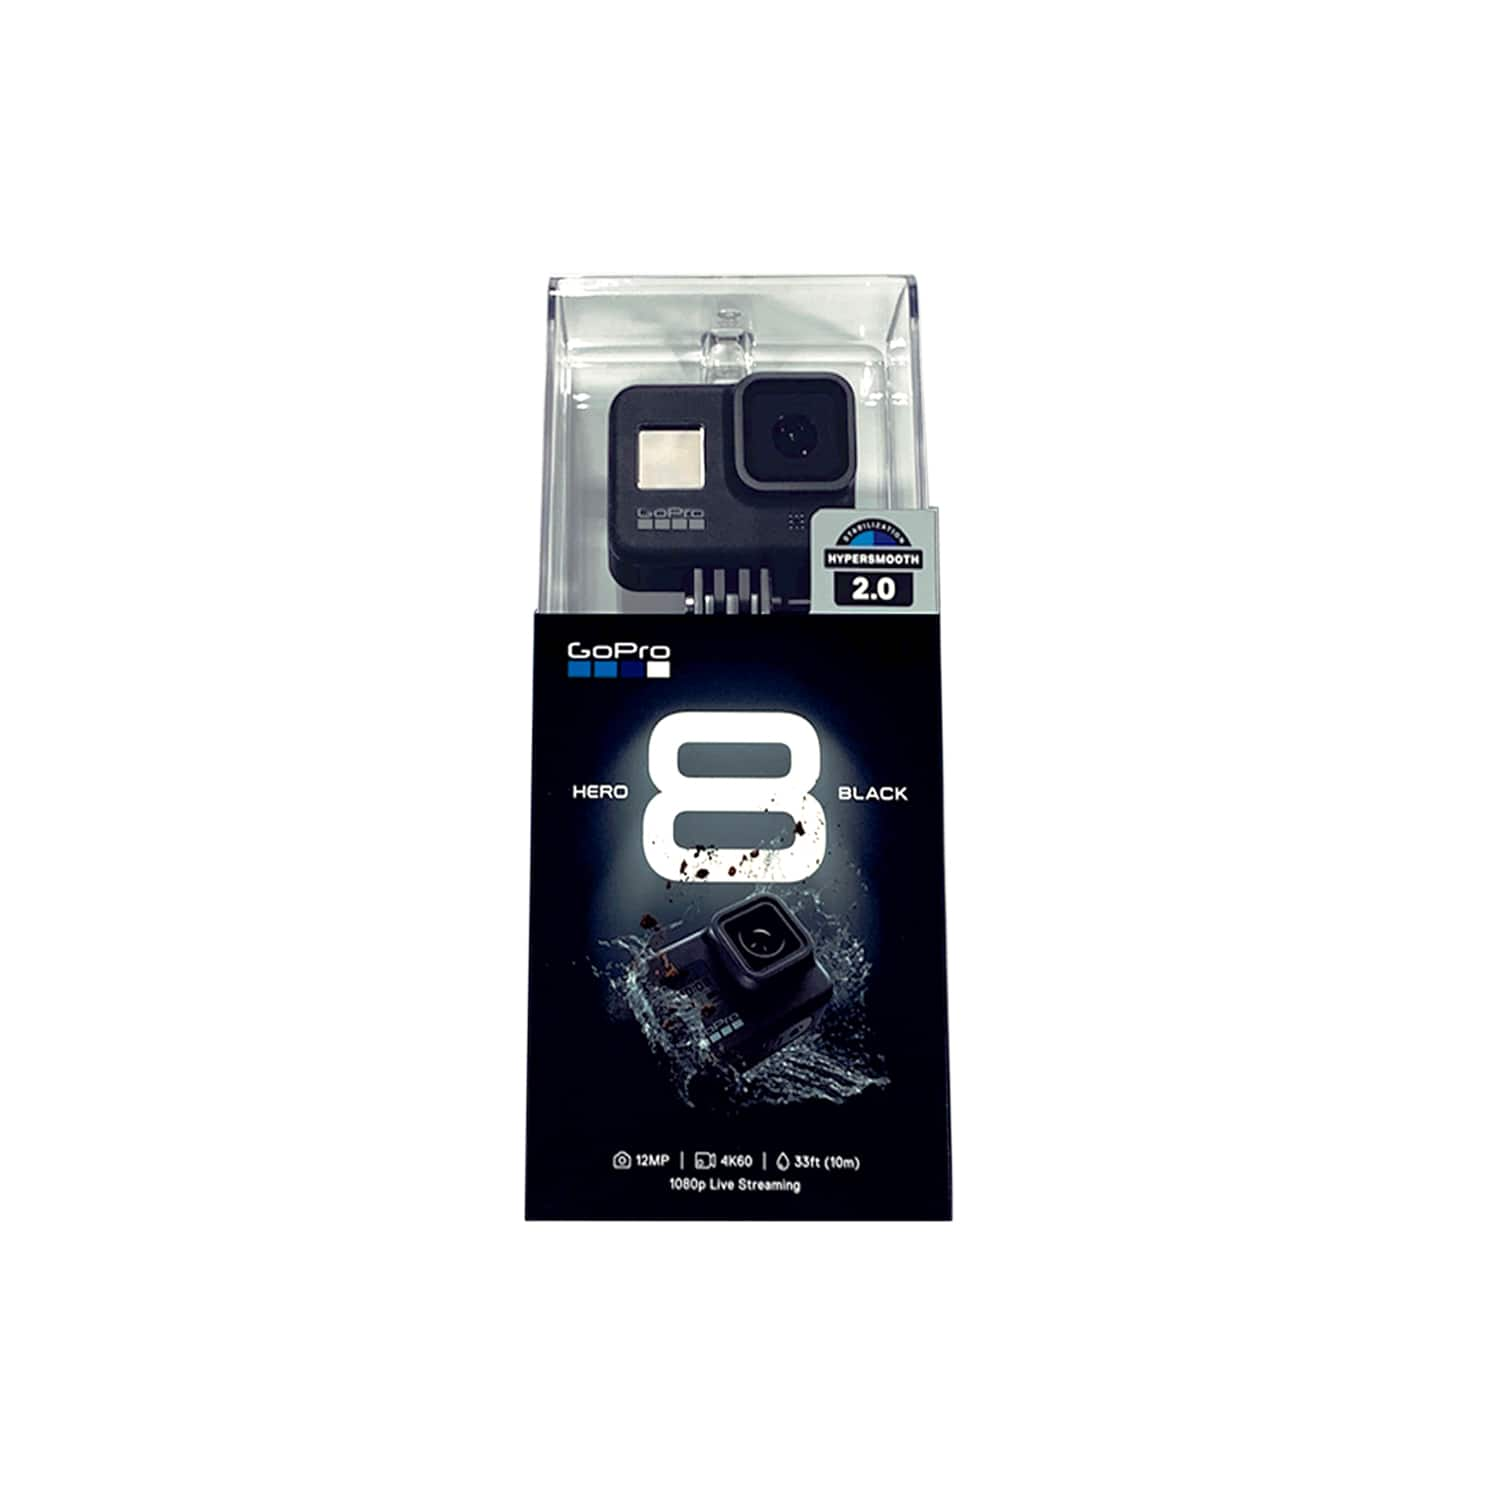 GoPro Hero8 FREE Shipping MEMBER PRICE $335.00 Coupon code AVE60